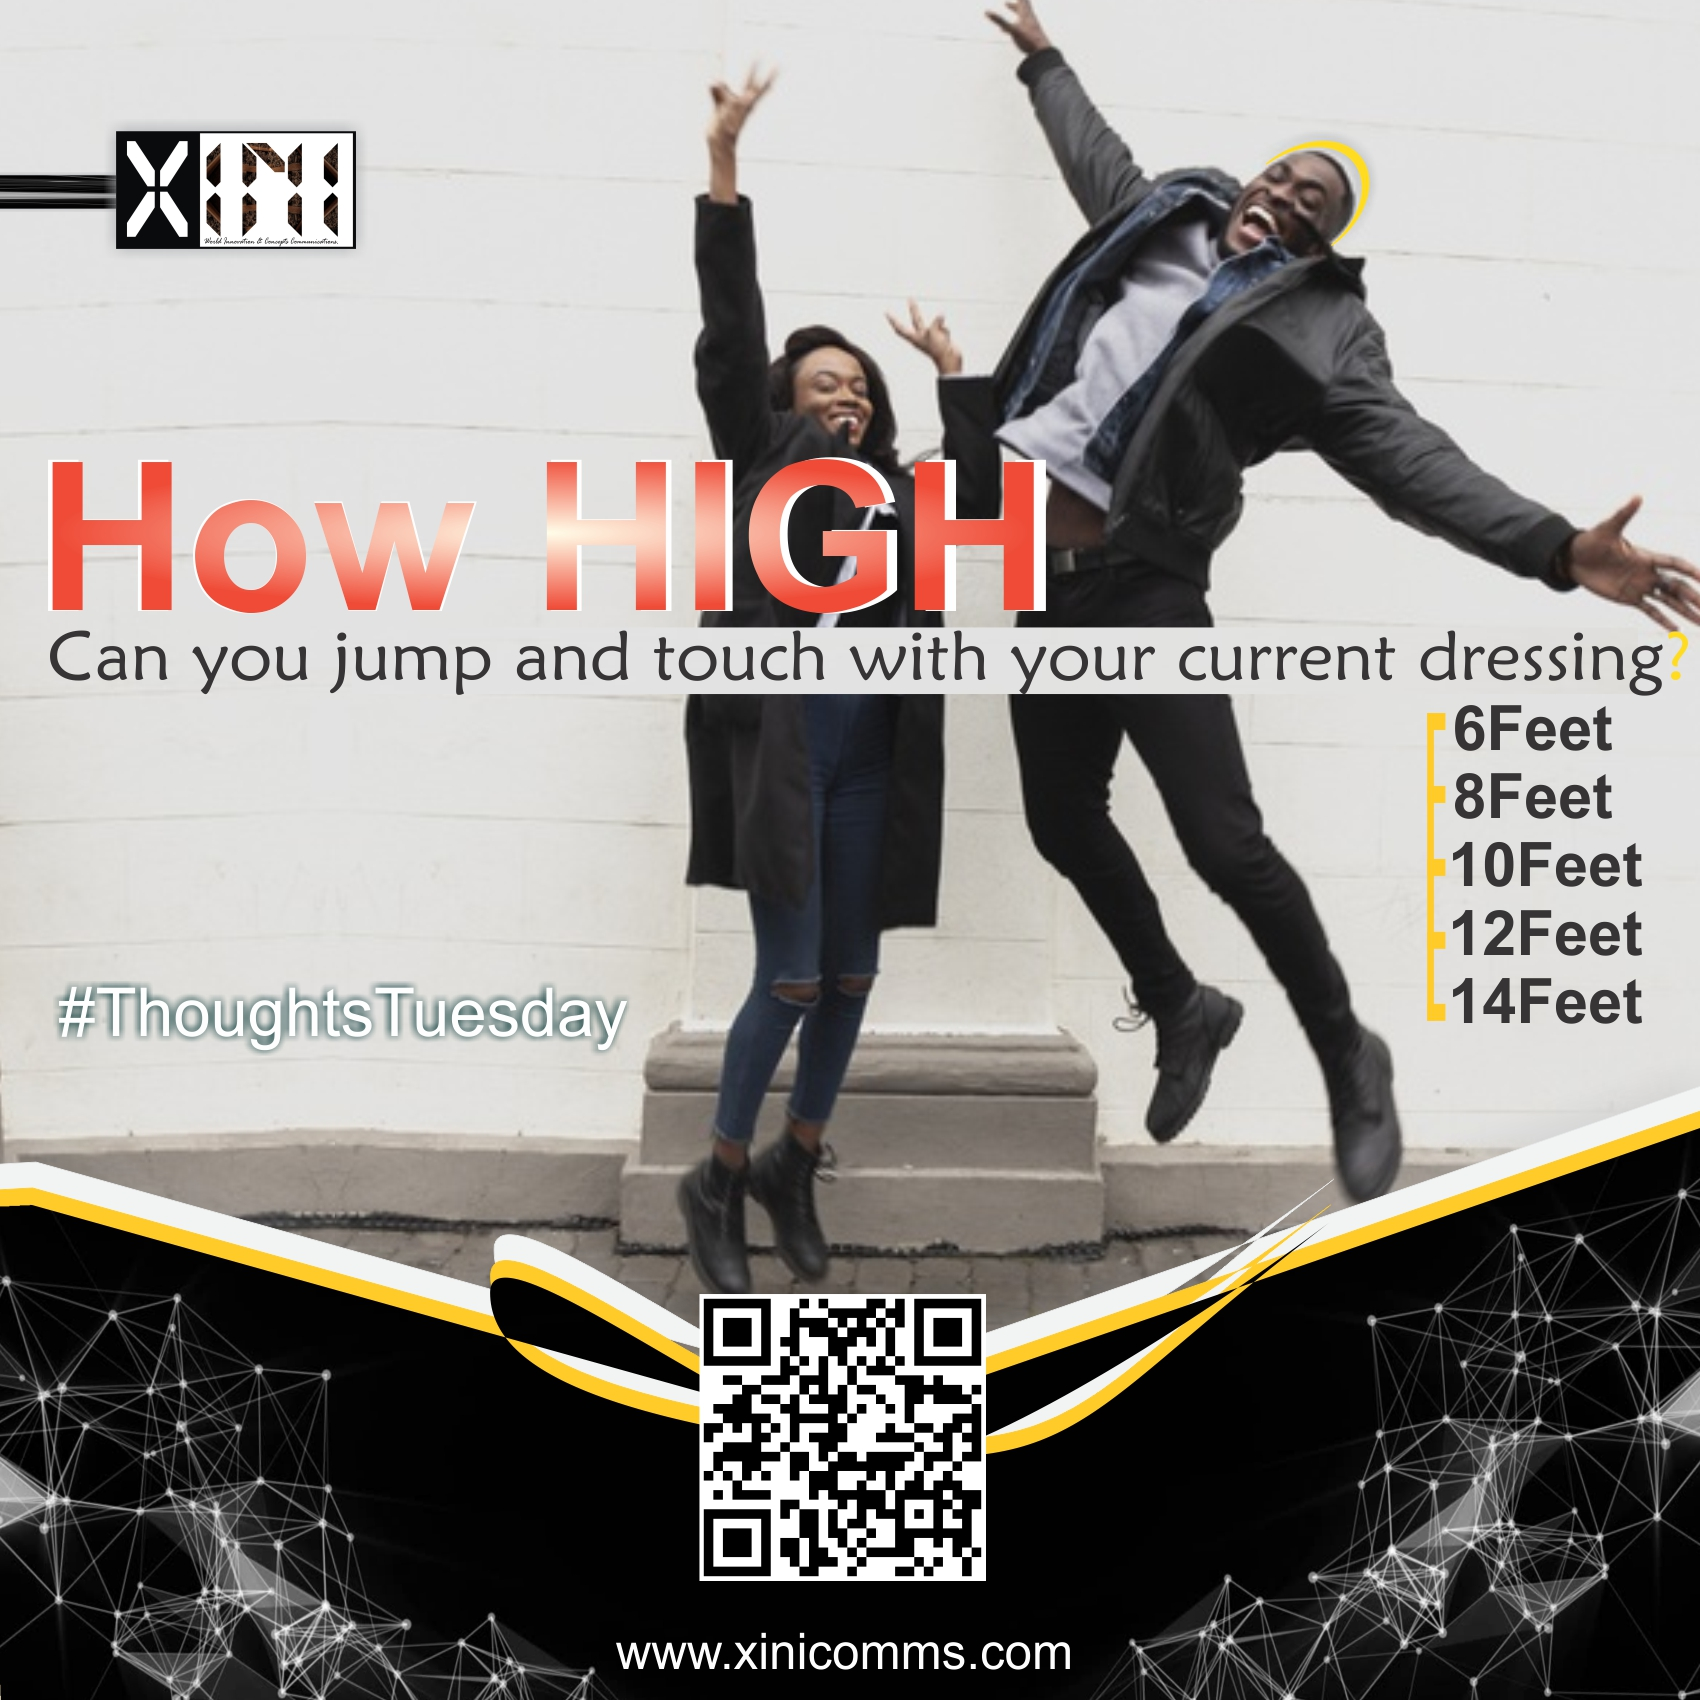 XINI-How-High-Can-You-Jump-prints-branding-experiential-marketing